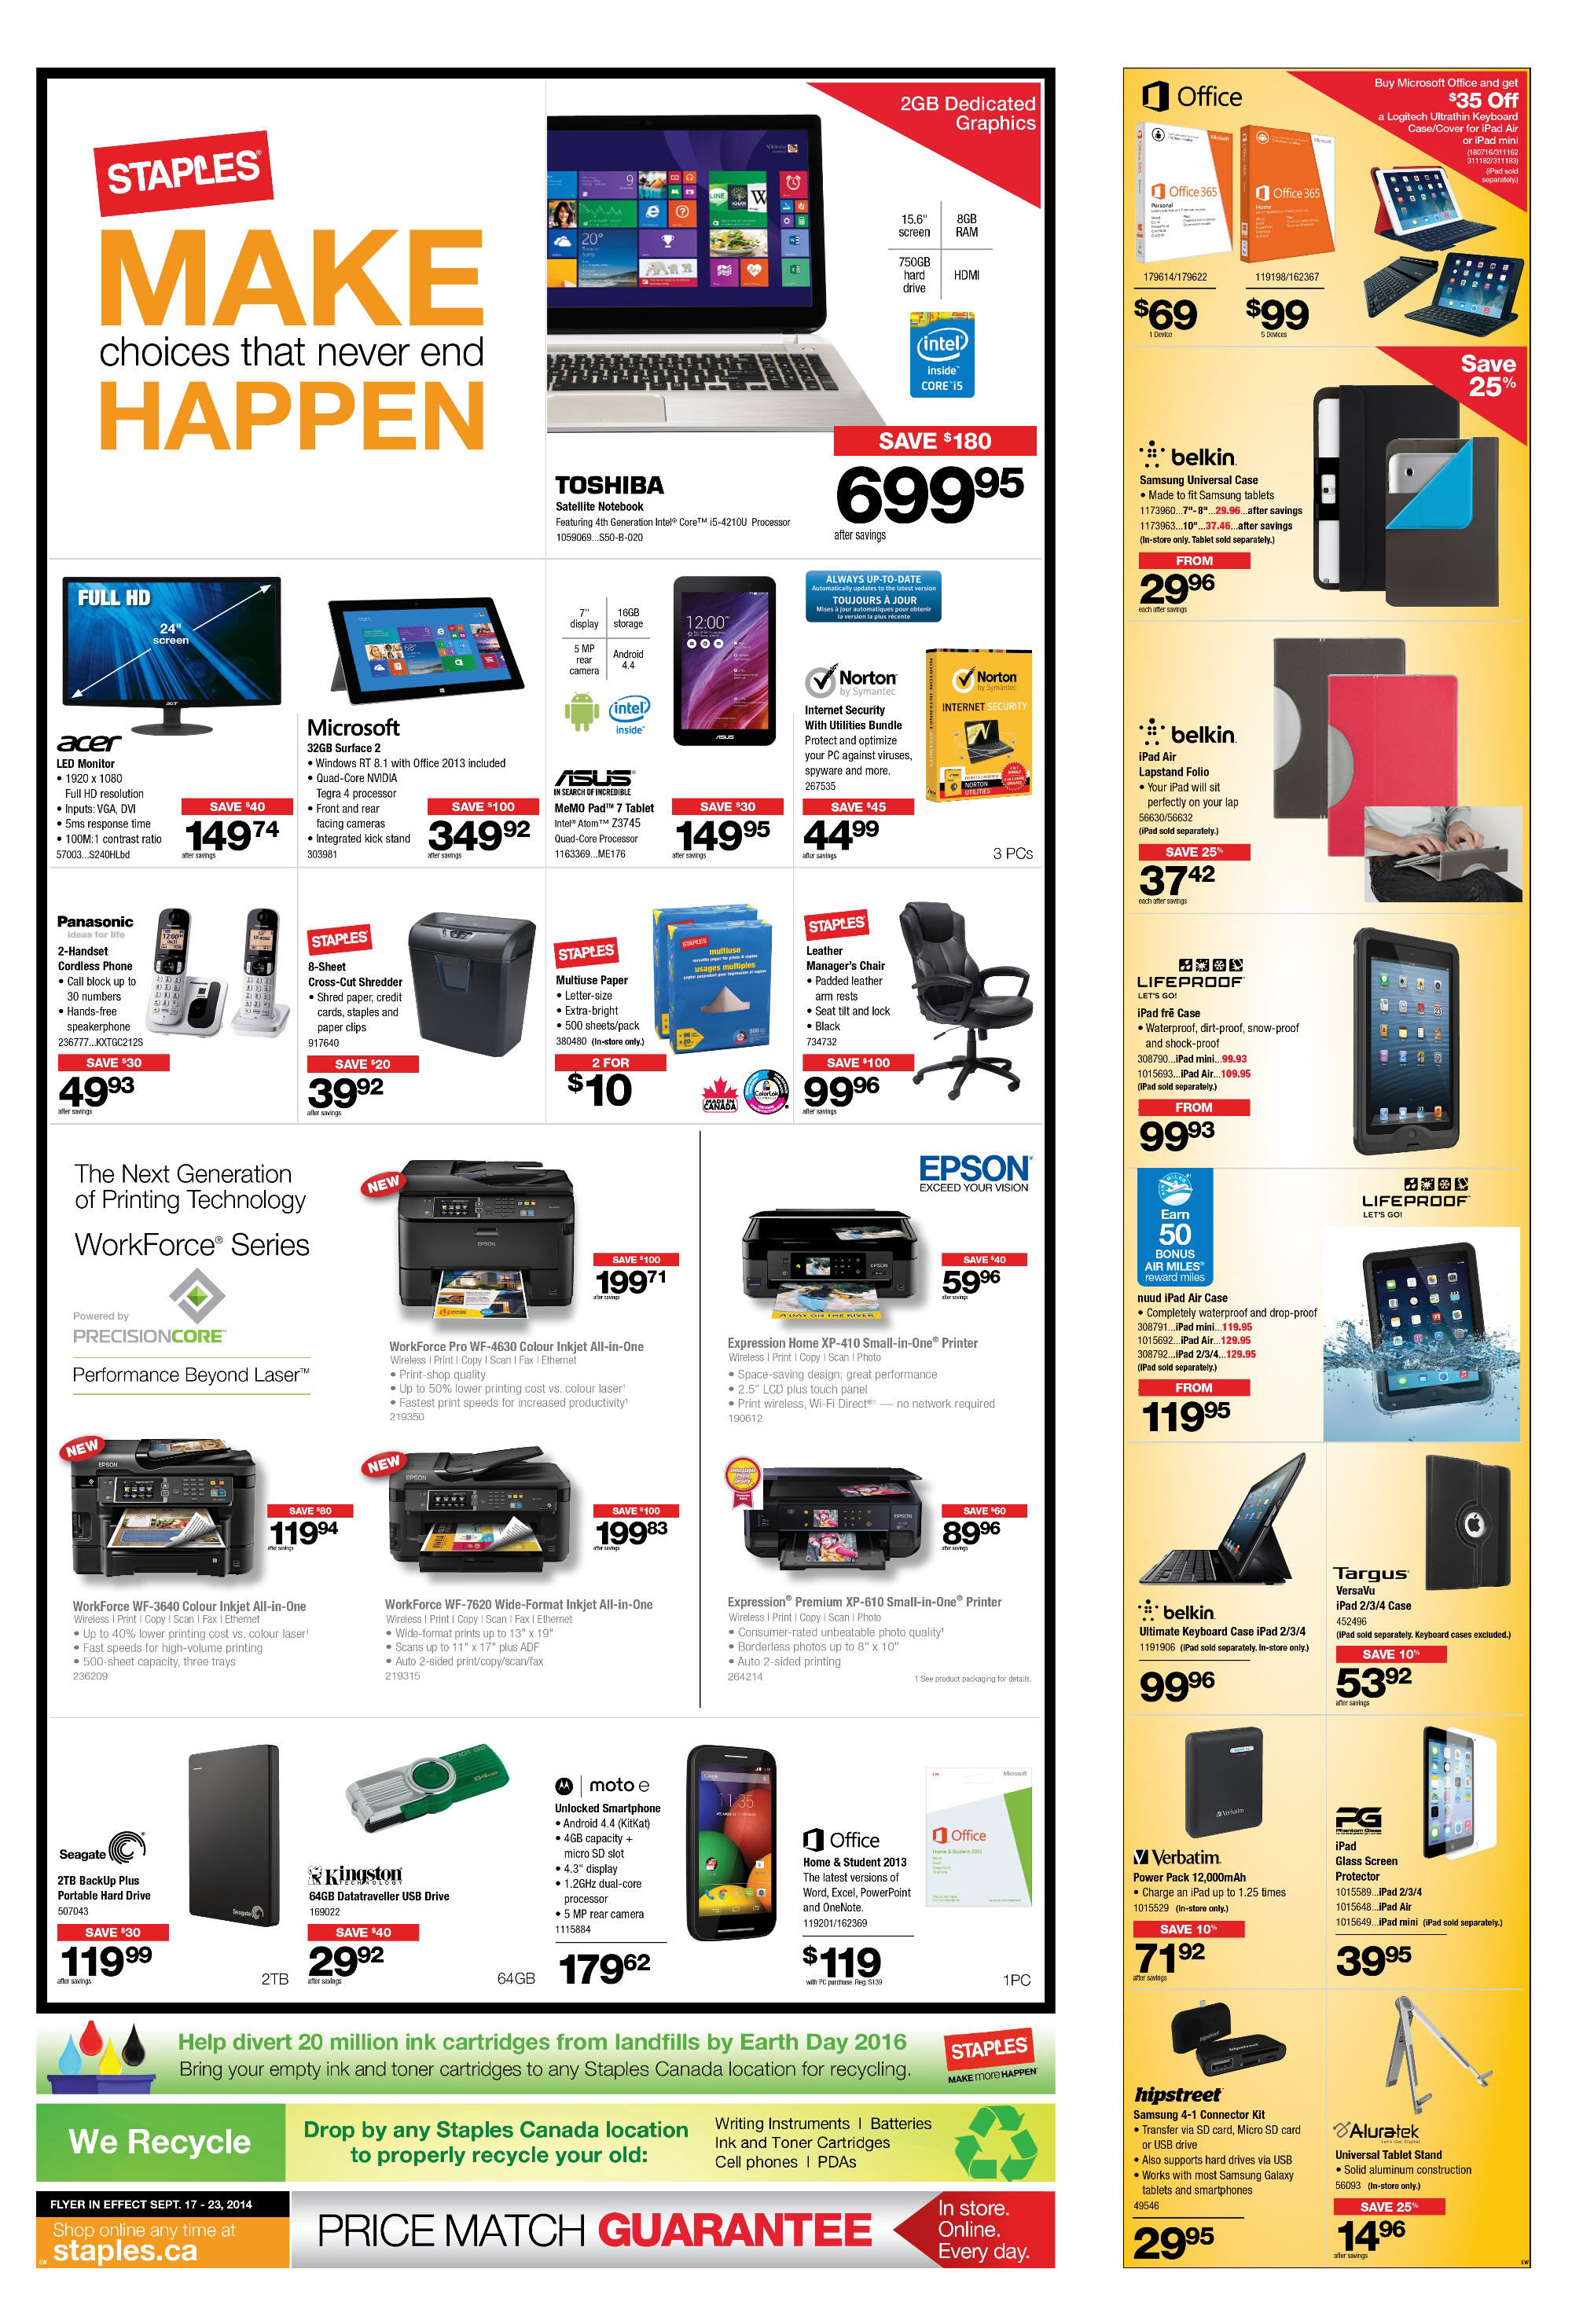 Staples Weekly Flyer - Make Choices That Never End Happen - Sep 17